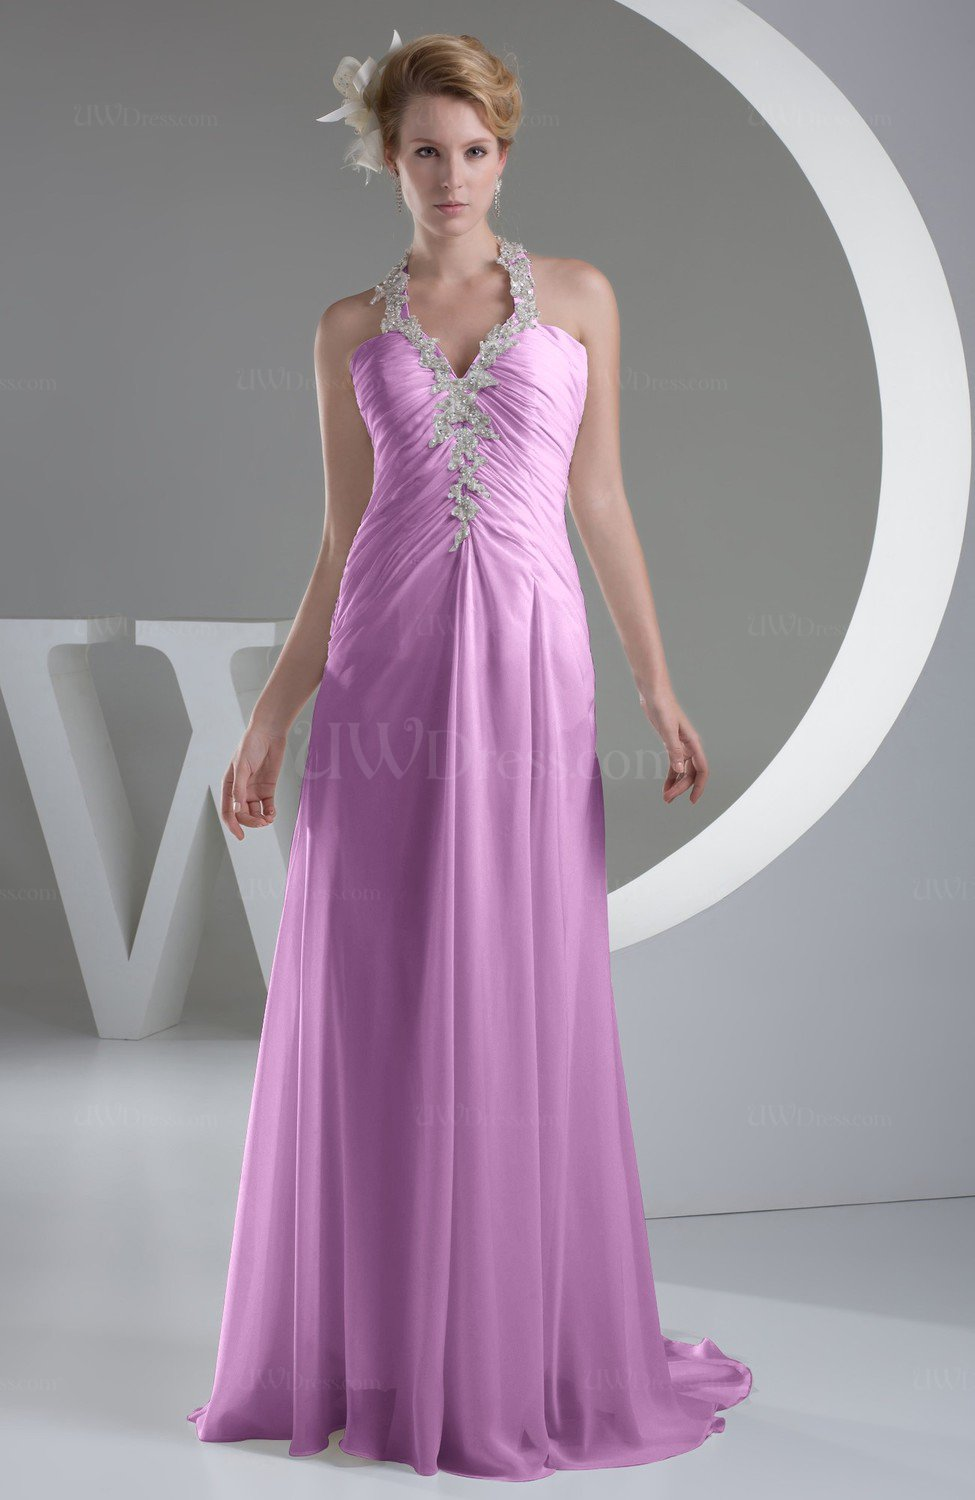 9d55991de2 Orchid Chiffon Bridesmaid Dress Inexpensive Traditional Winter Mature Petite